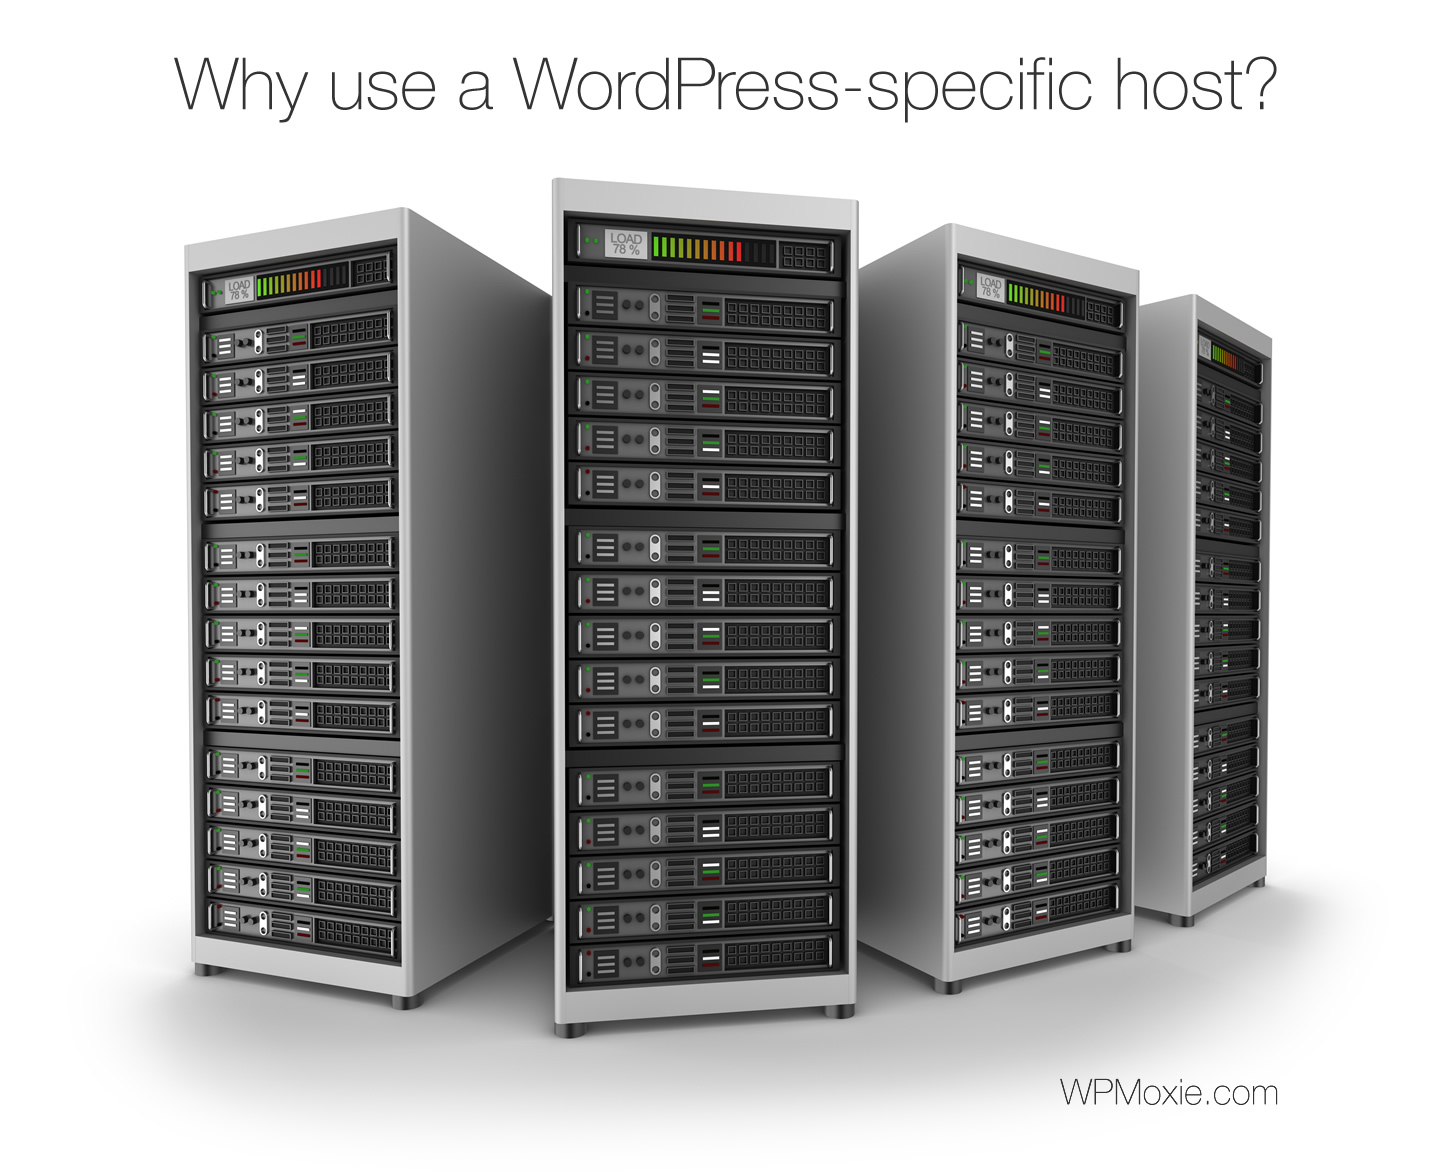 Cool image about WordPress specific hosts - it is cool